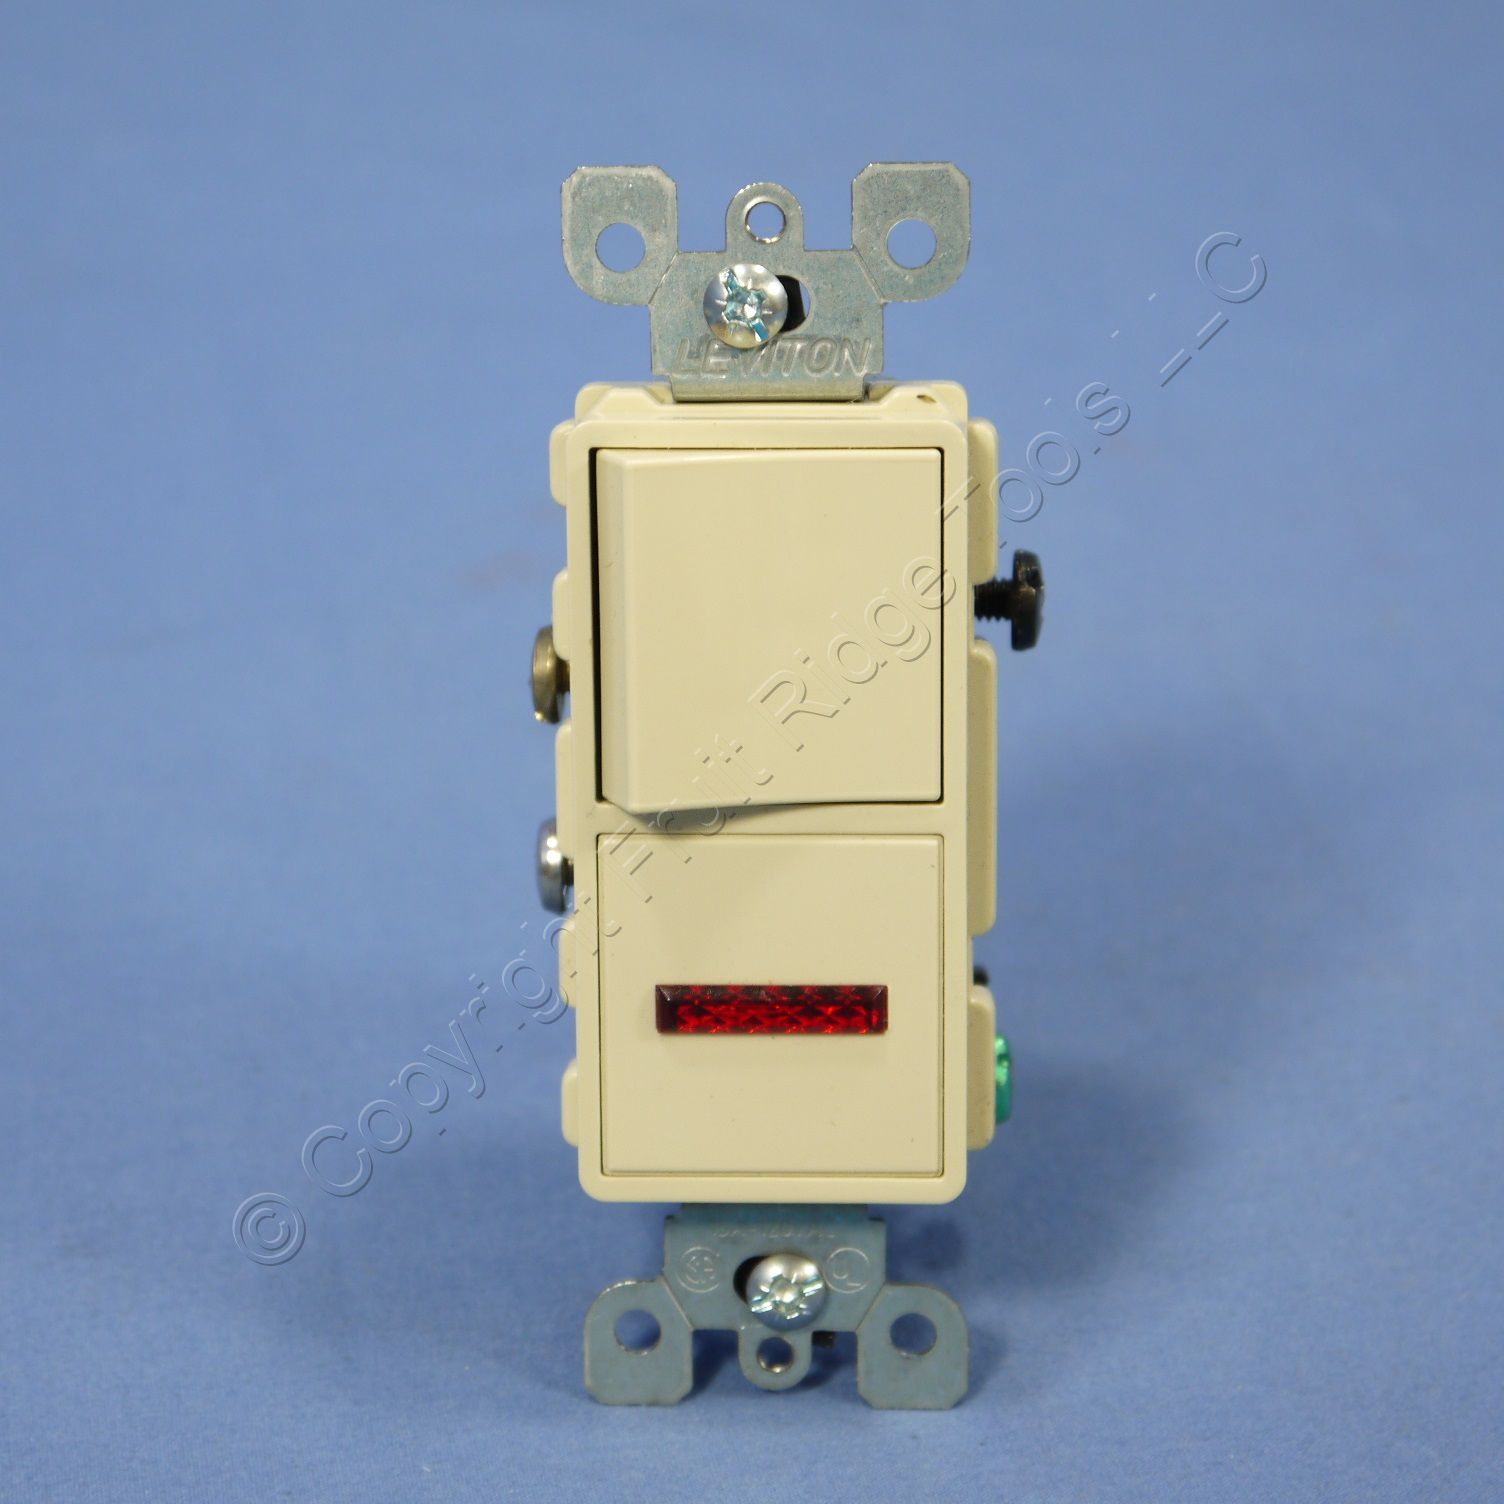 Leviton ivory decora toggle switch with pilot light 15a for Decora light switches